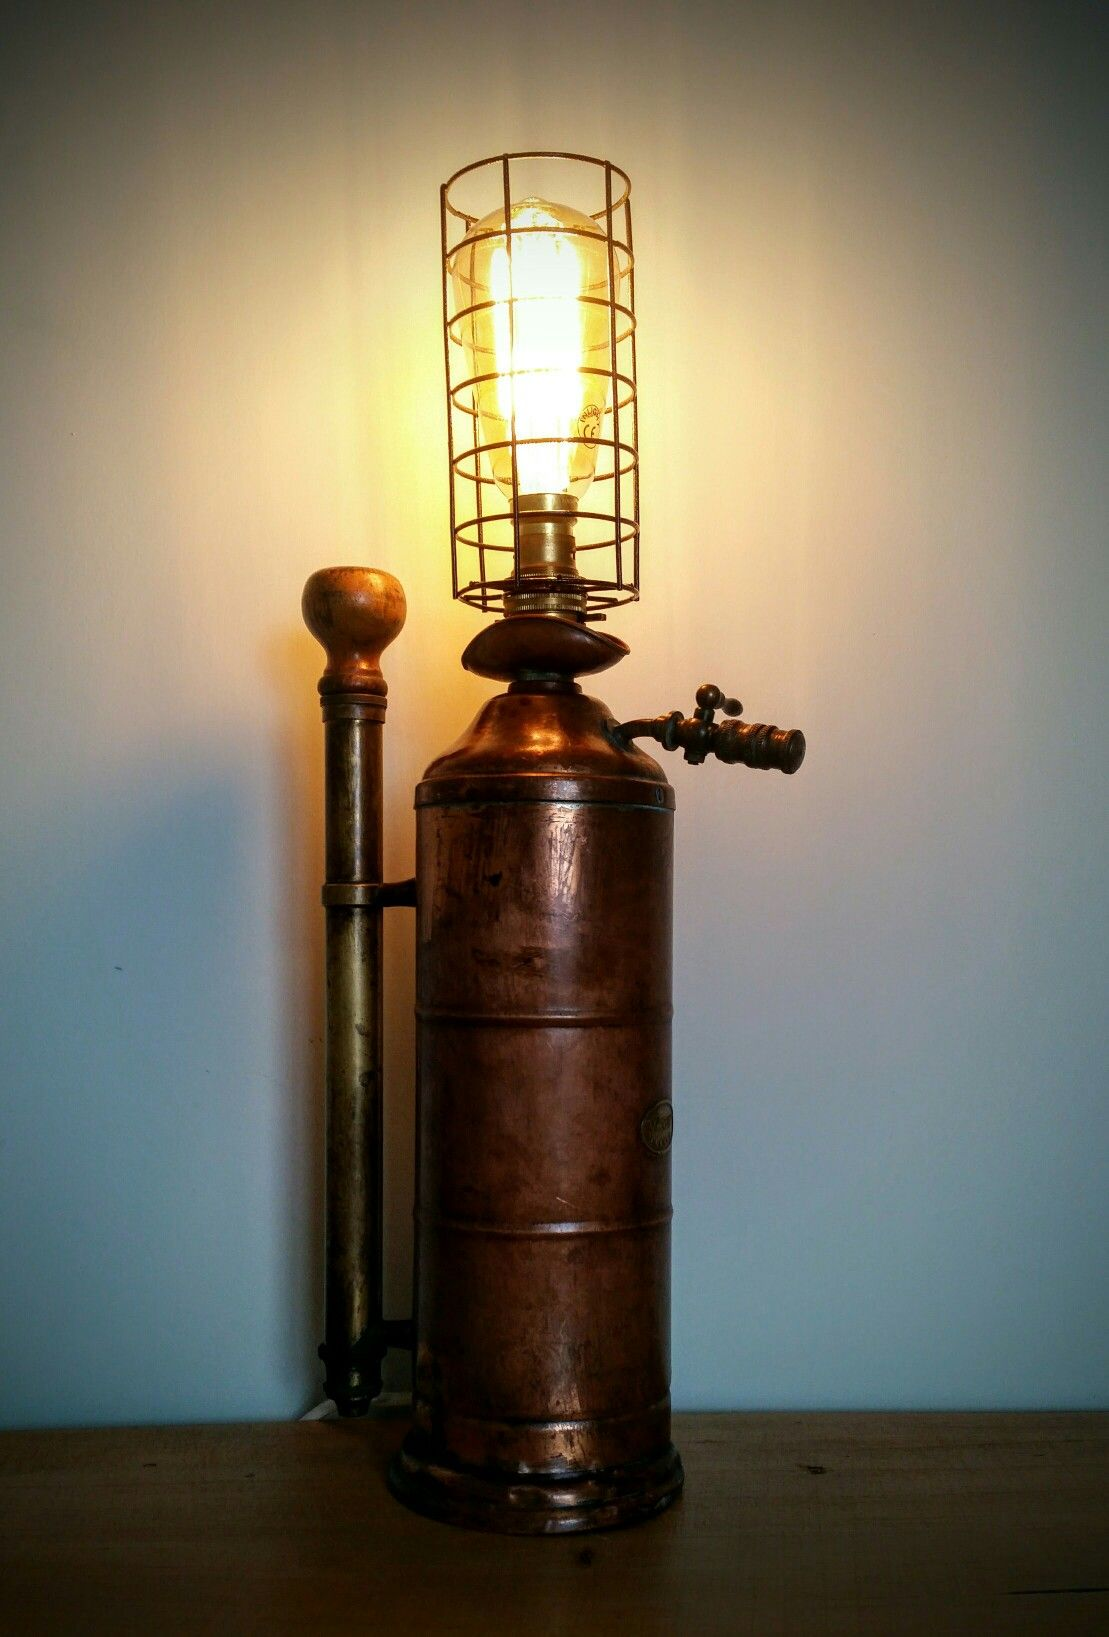 Industrial Chic Lighting Amc77 Vintage Sprayer Lamp Steampunk Industrial